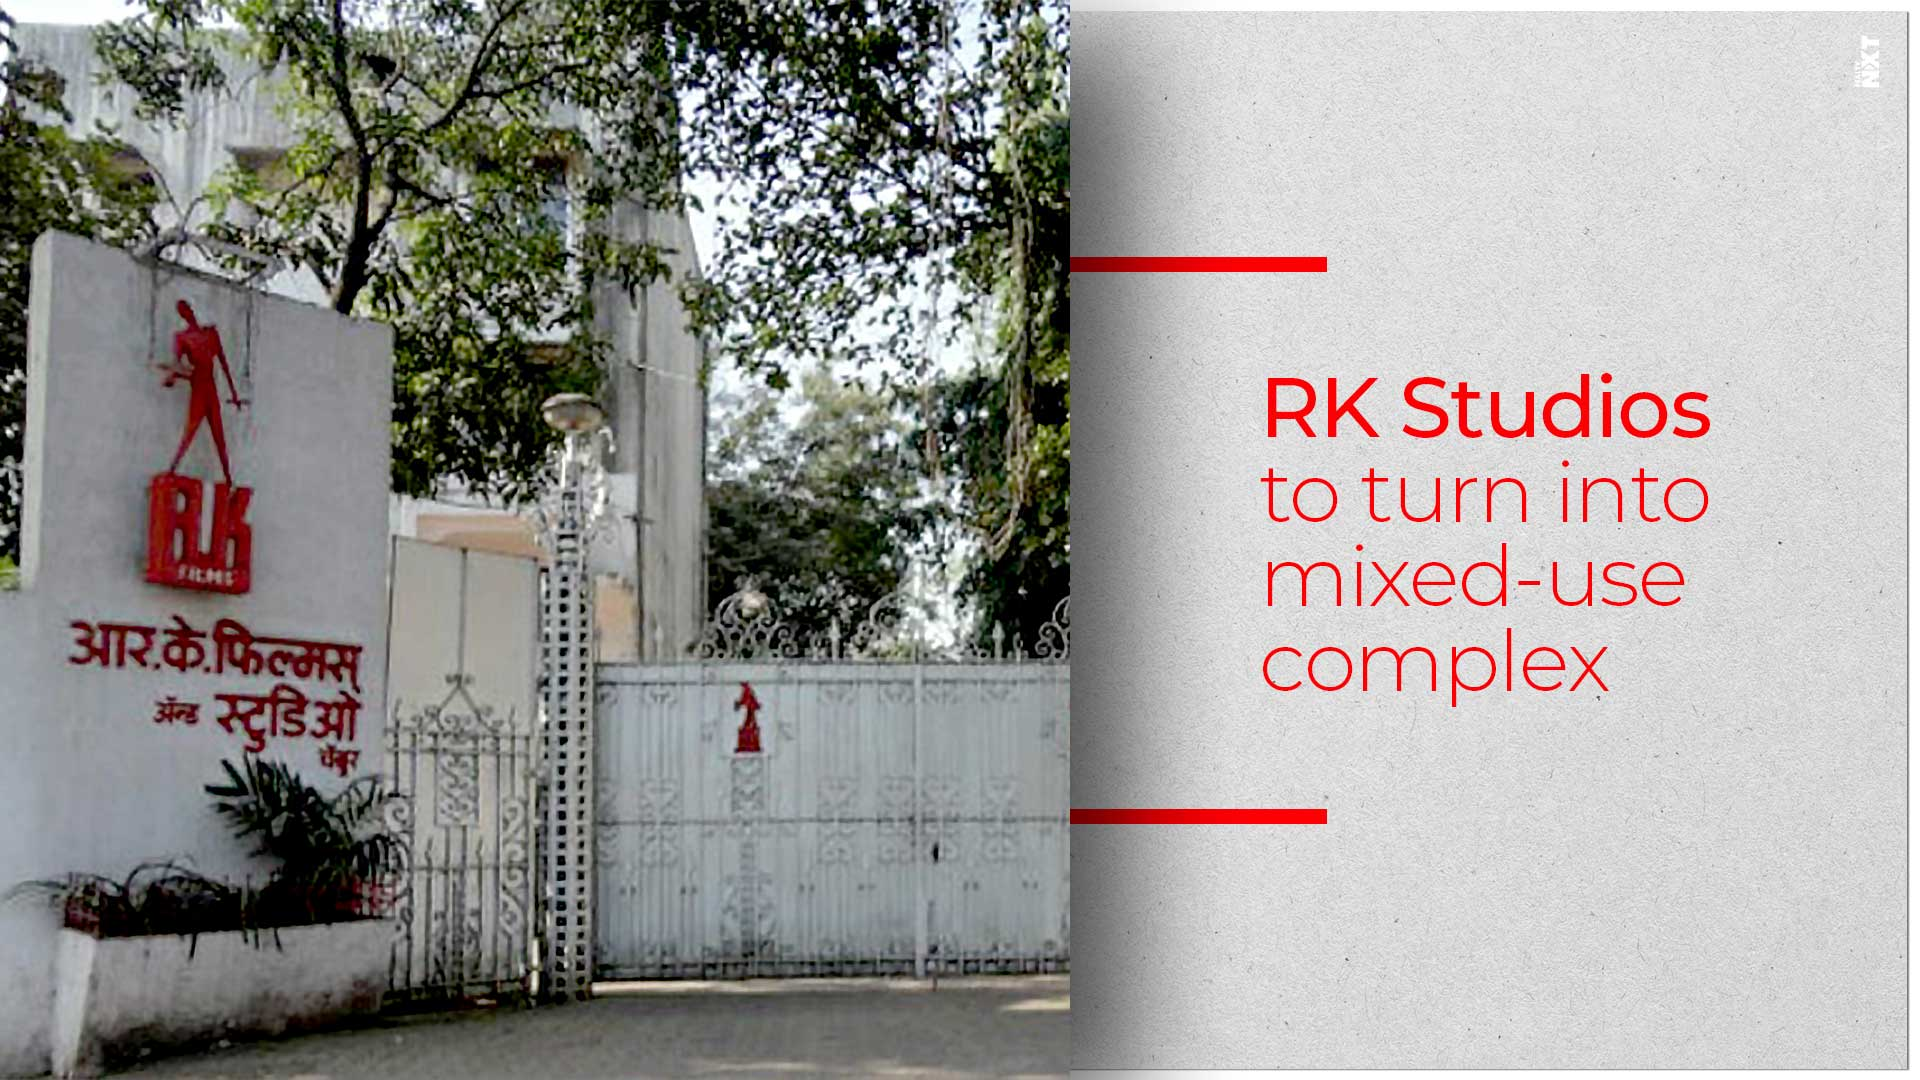 Godrej Properties Buy Iconic RK Studios For An Undisclosed Price